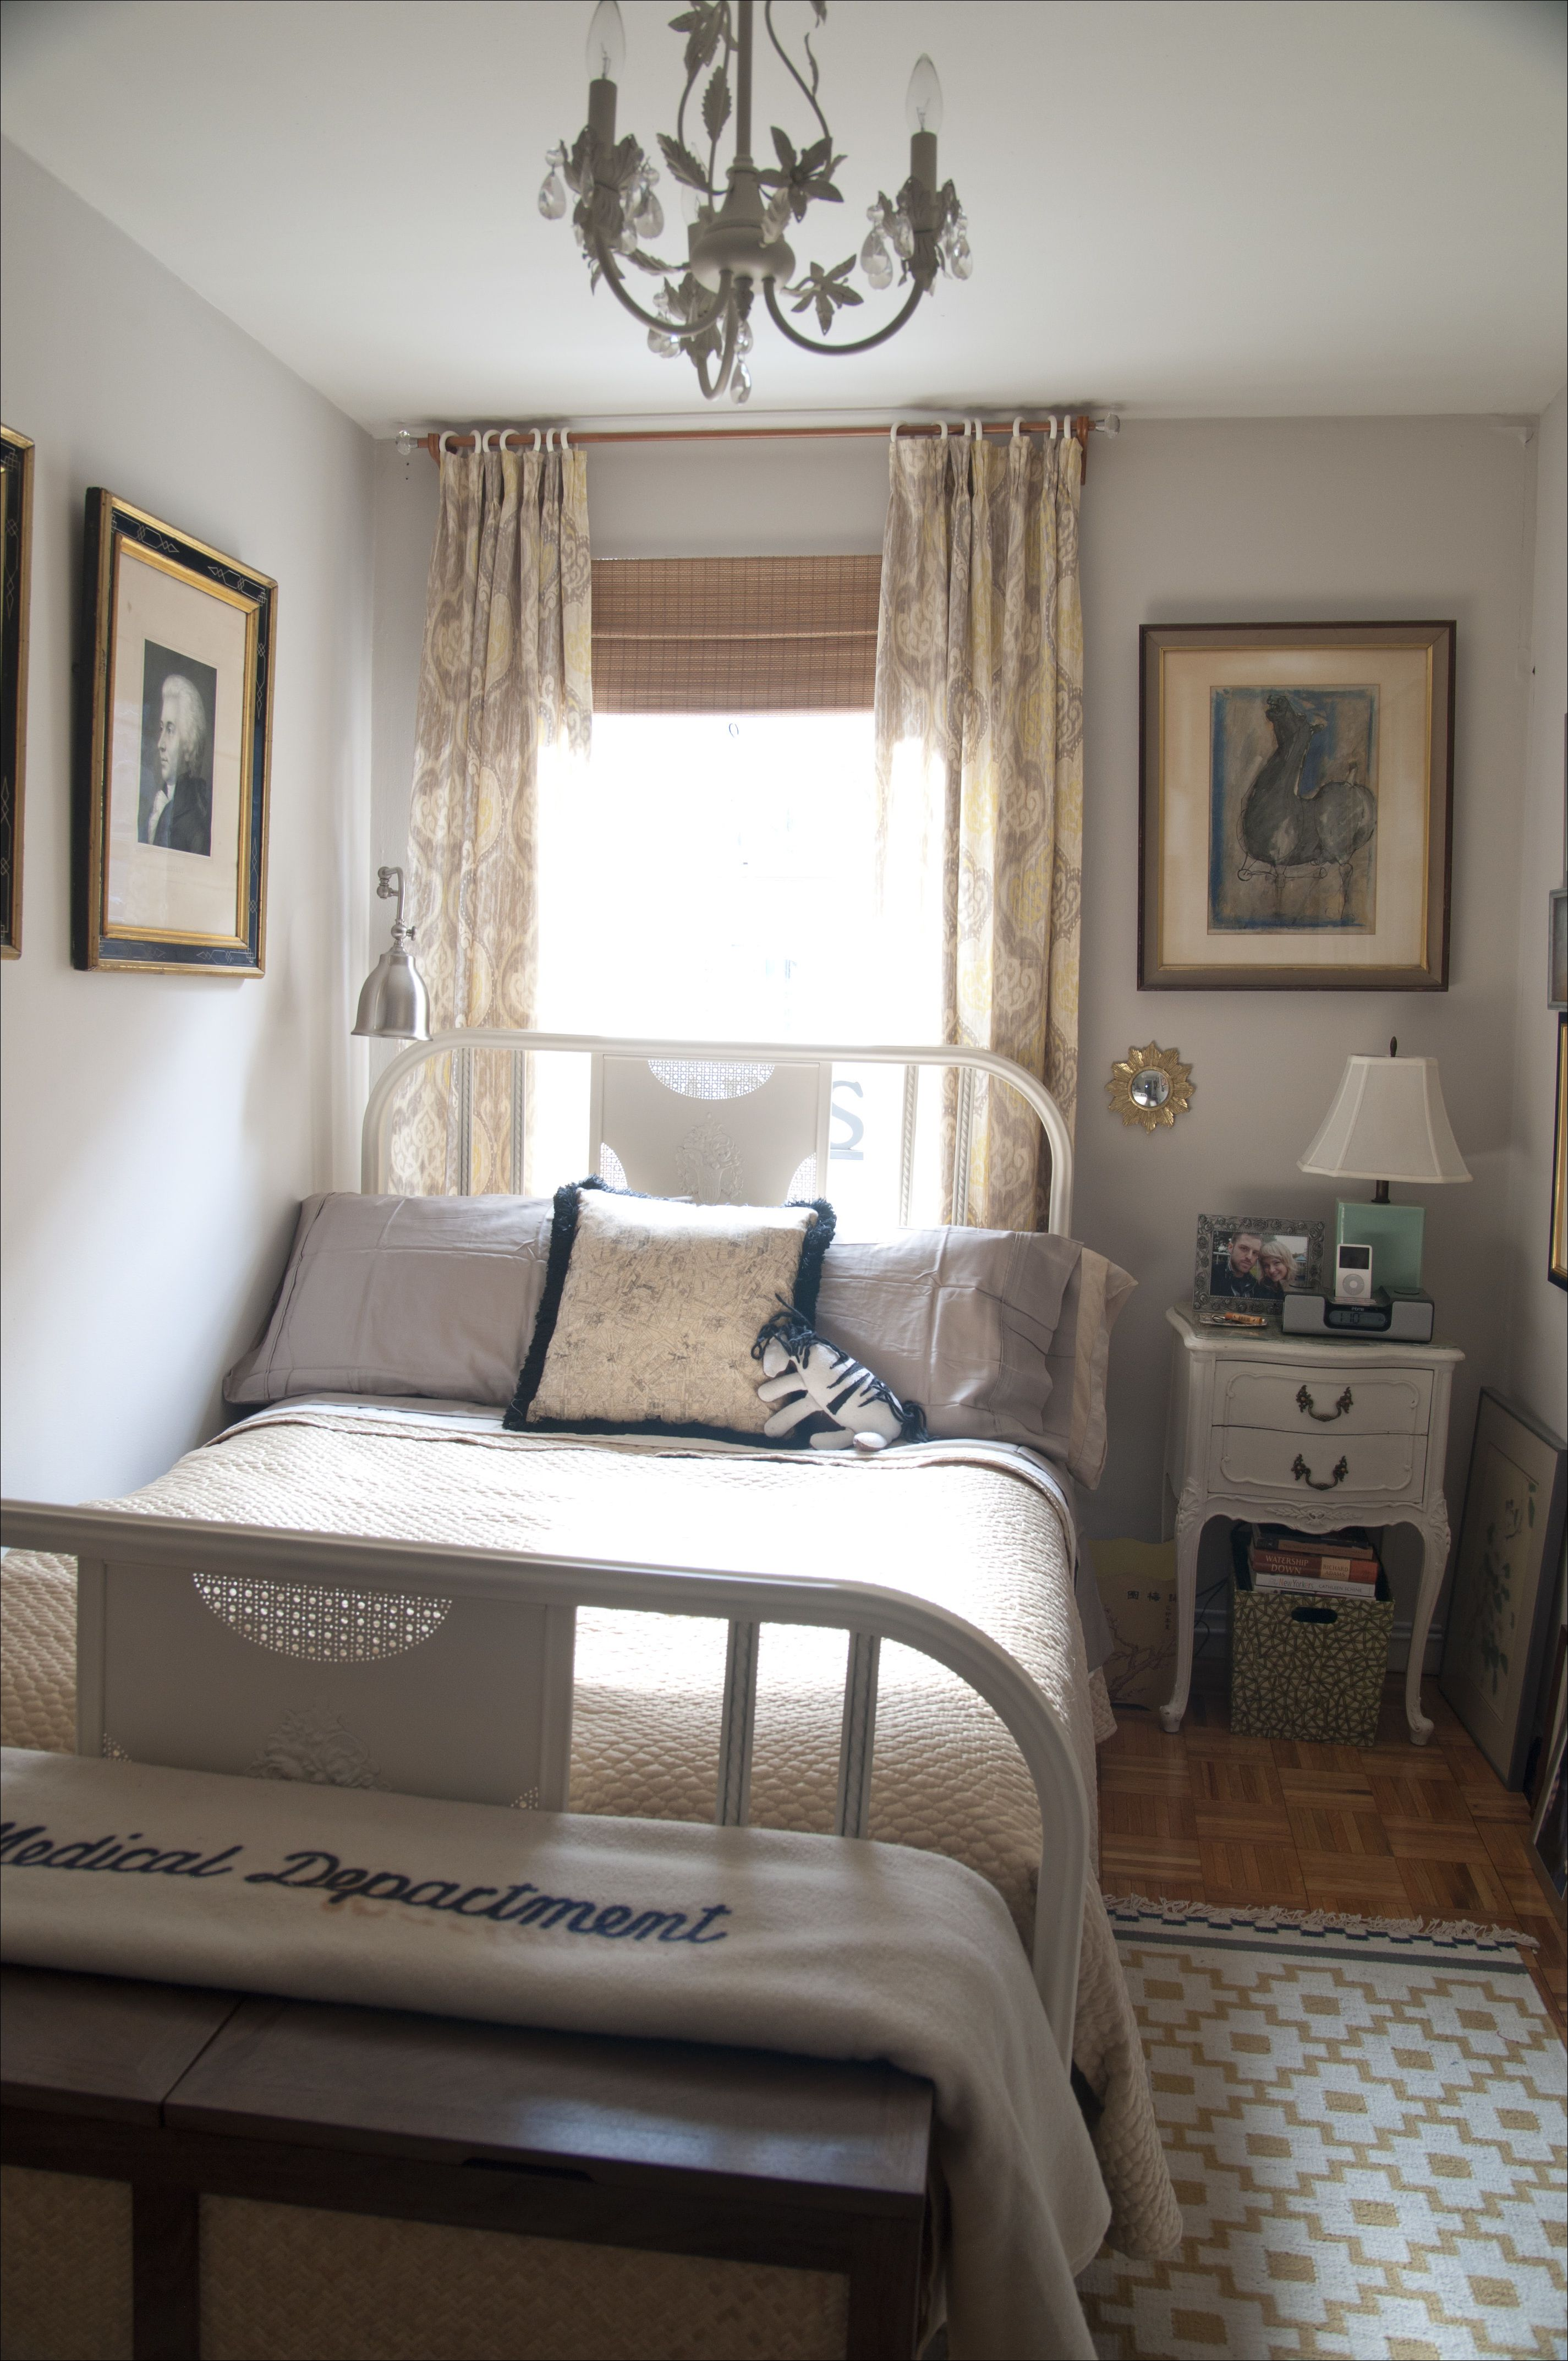 Pin by Amanda on Rooms | Small bedroom interior, Small ...